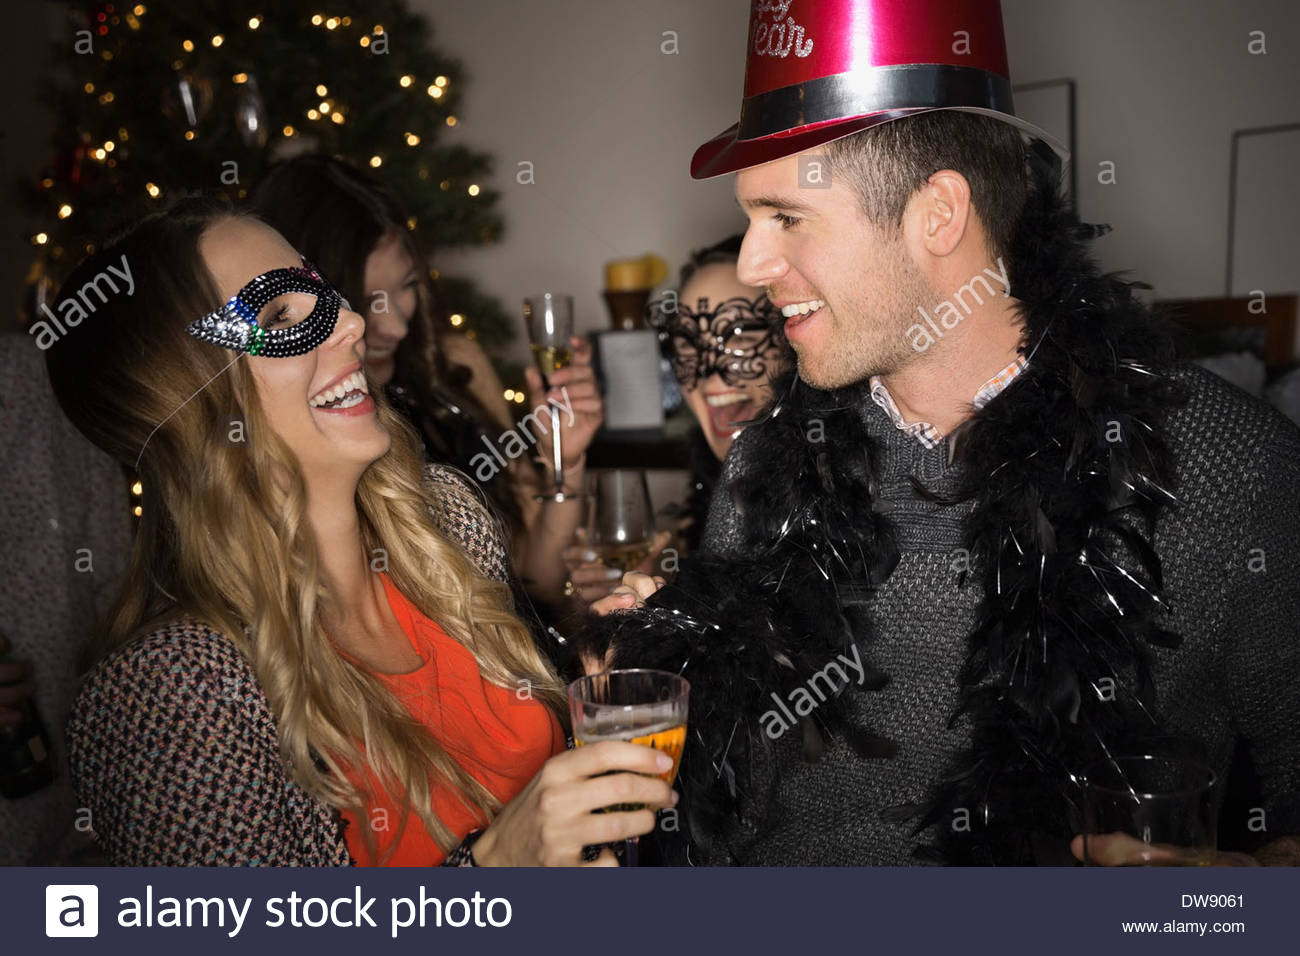 Couple enjoying New Years Eve party at home - Stock Image